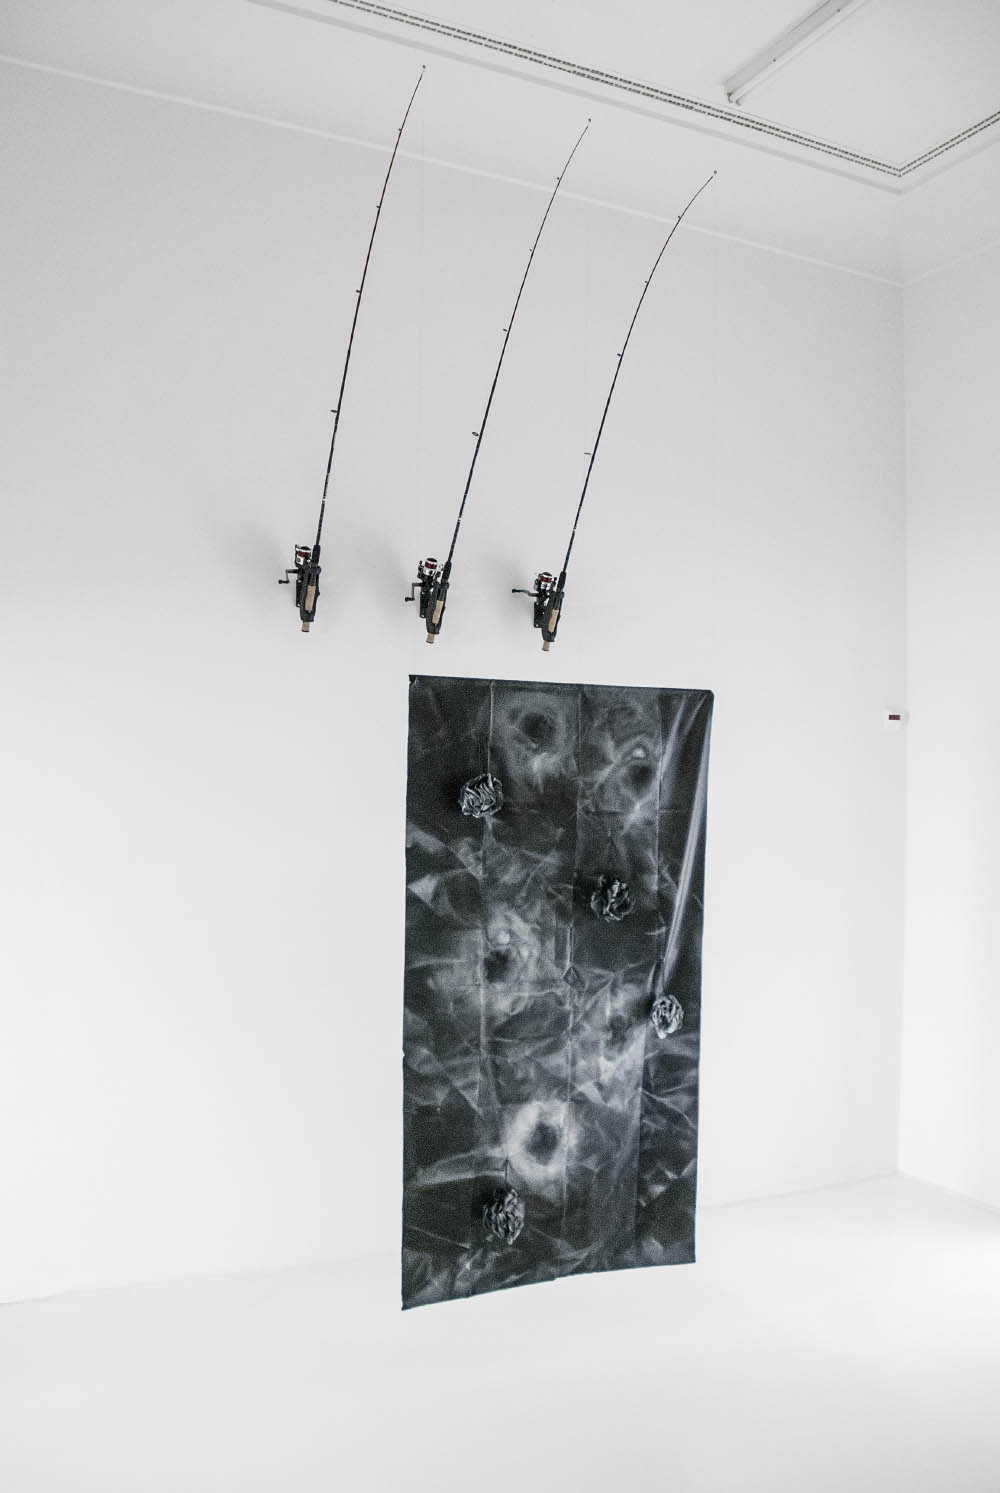 Relief, 2013, Fishing rods, rod mounts, spray paint and loofahs on shower curtain,375 x 150 x 95 cm. Installation view at Helmhaus, Zurich, CH